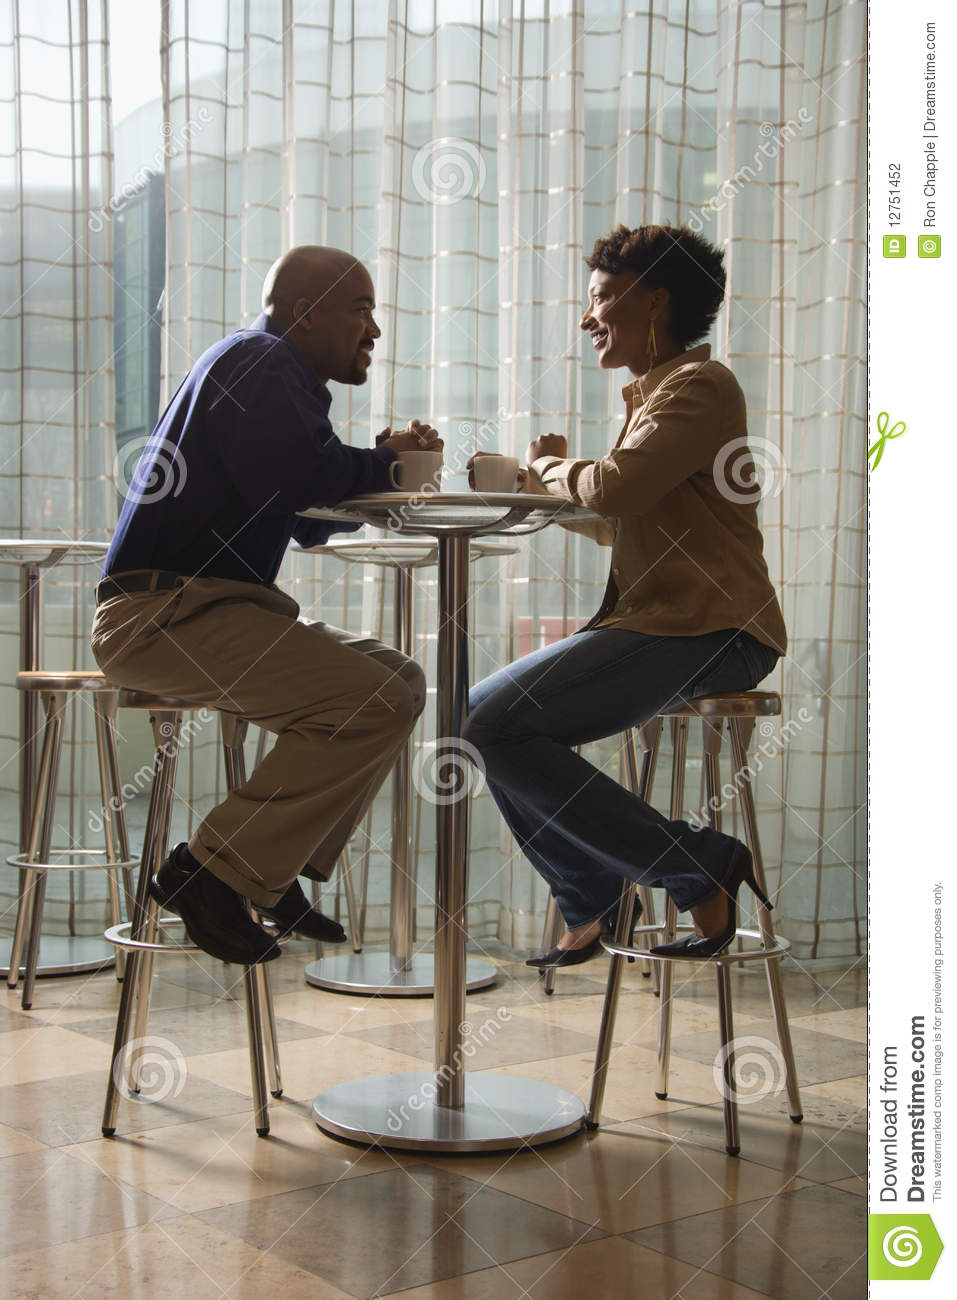 African-American Couple Having Coffee at Cafe